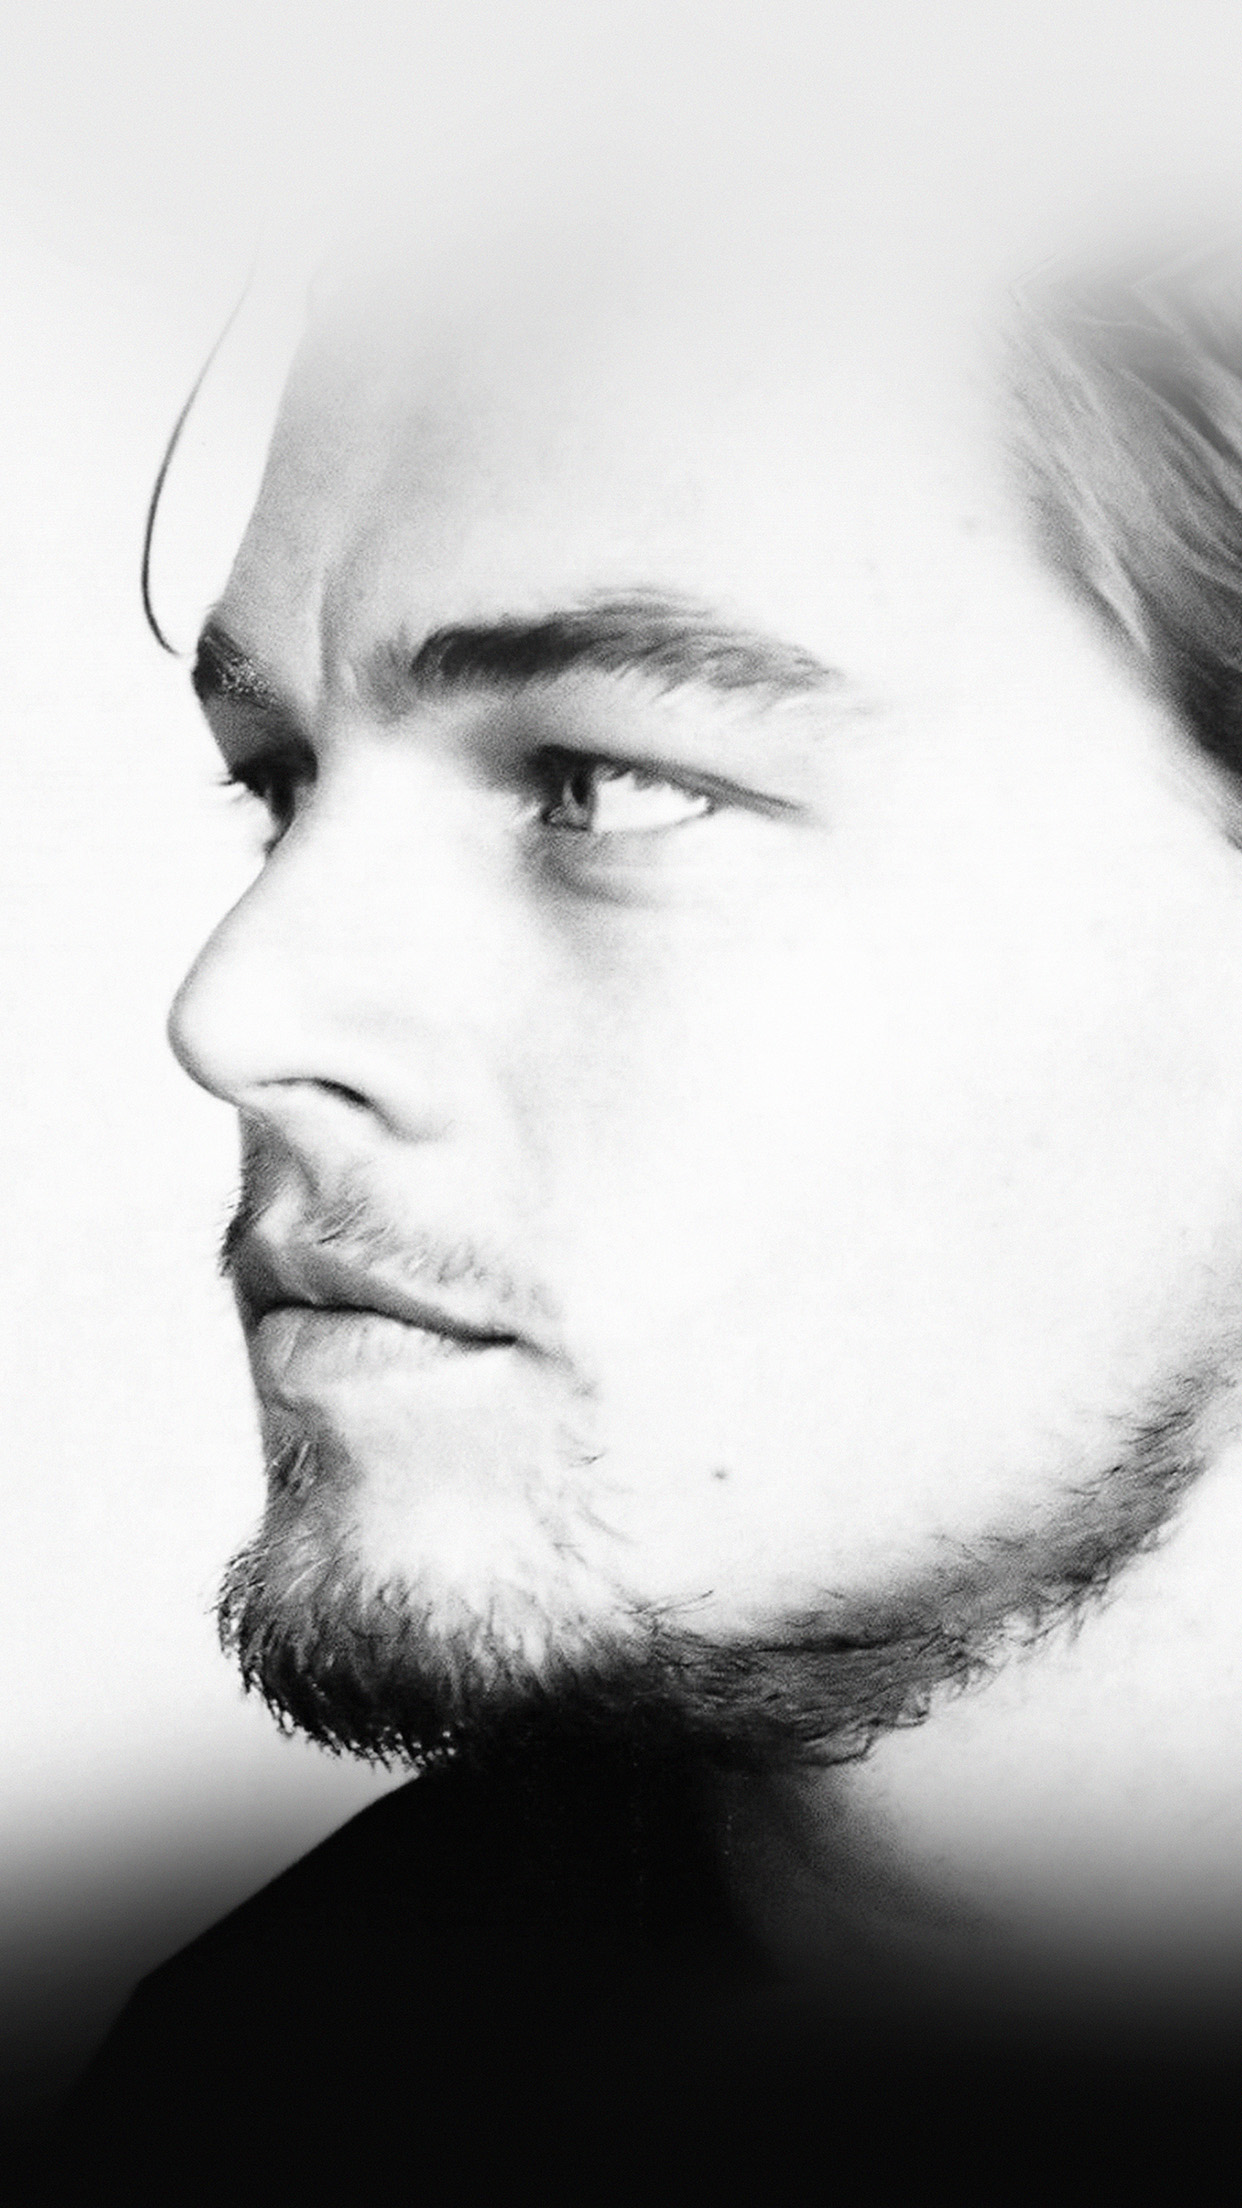 leonardo dicaprio face film star android wallpaper - android hd